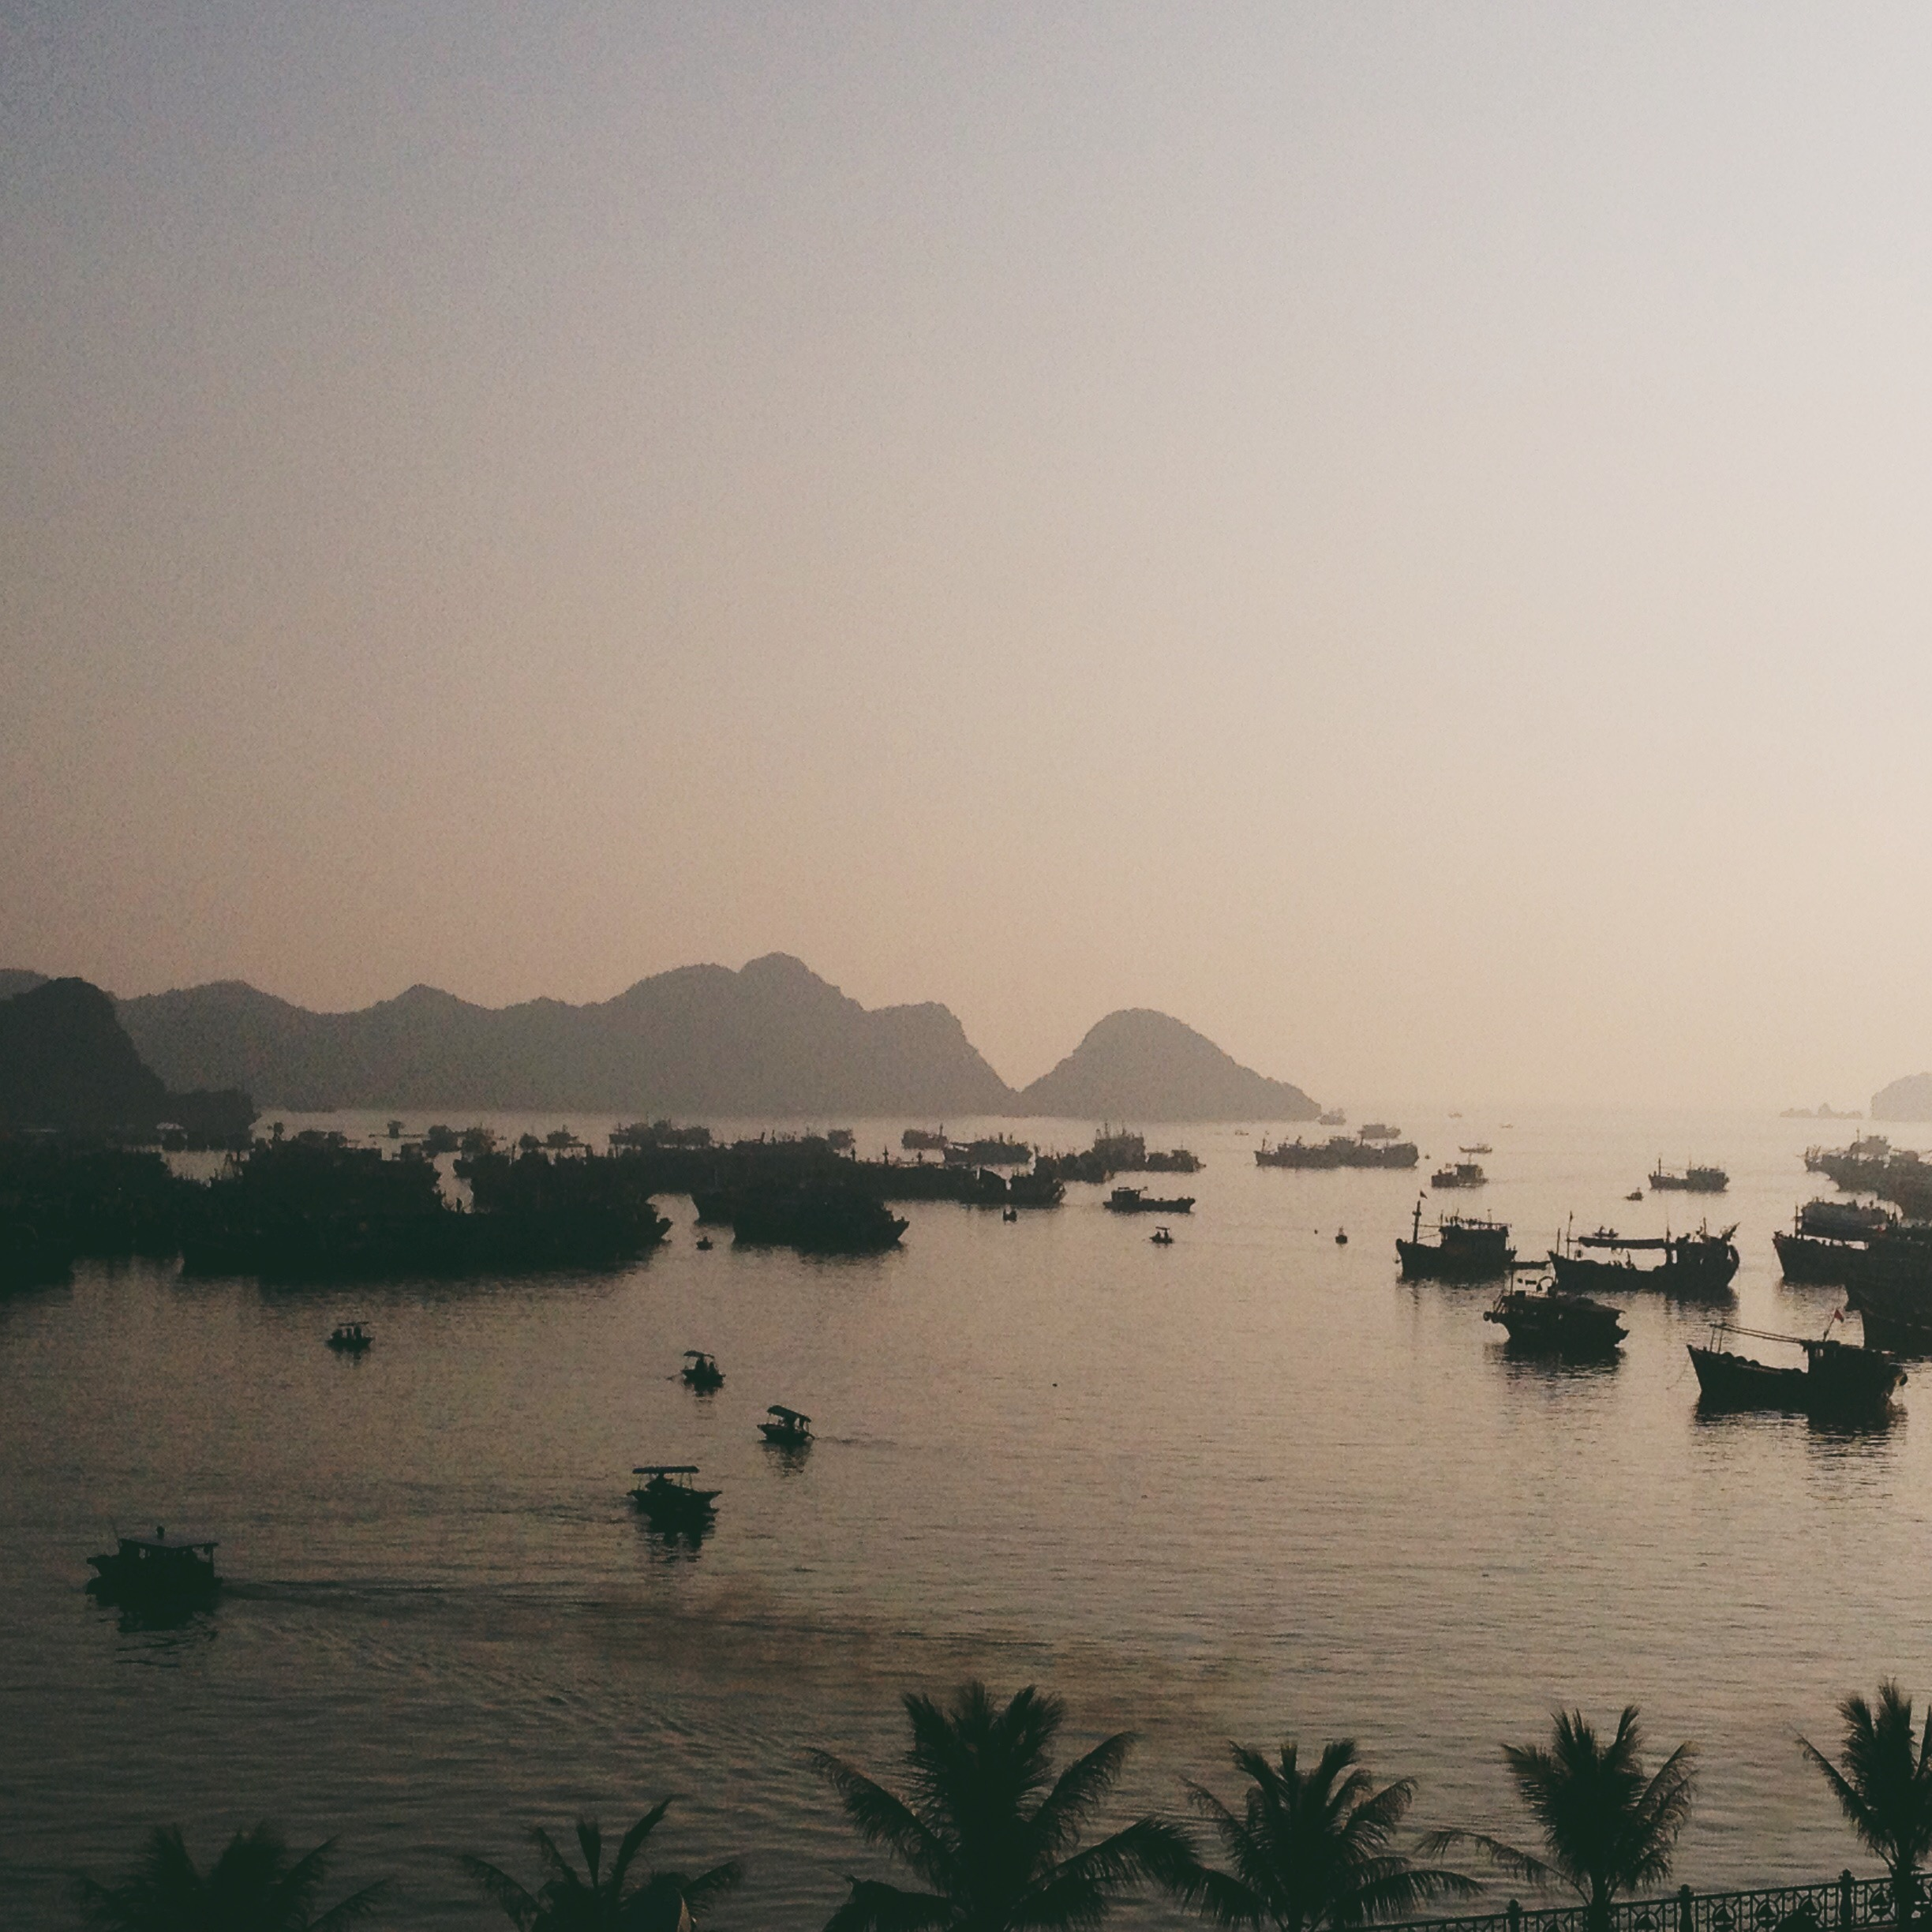 Sun setting over the boats in Cat Ba.